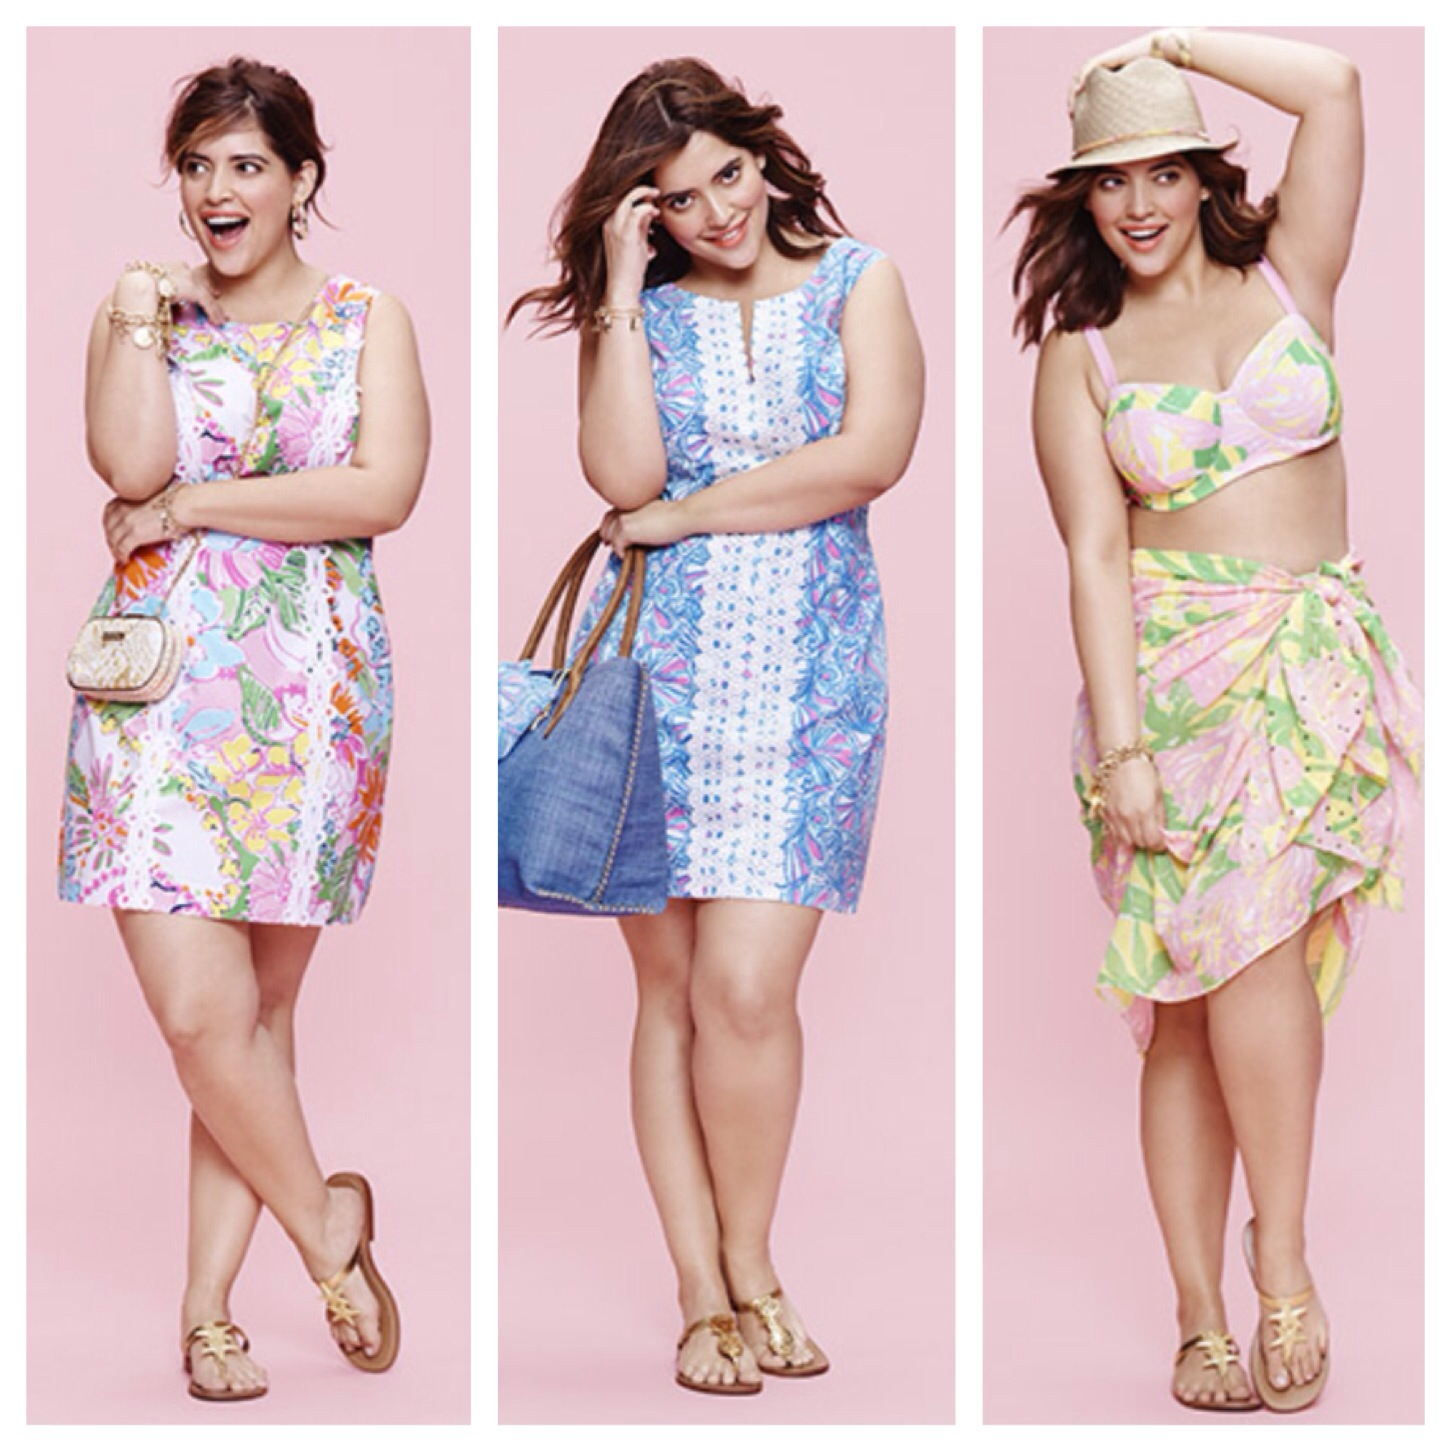 668a51b6a3fde Lilly Pulitzer for Target  Plus Size Picks – Curvily